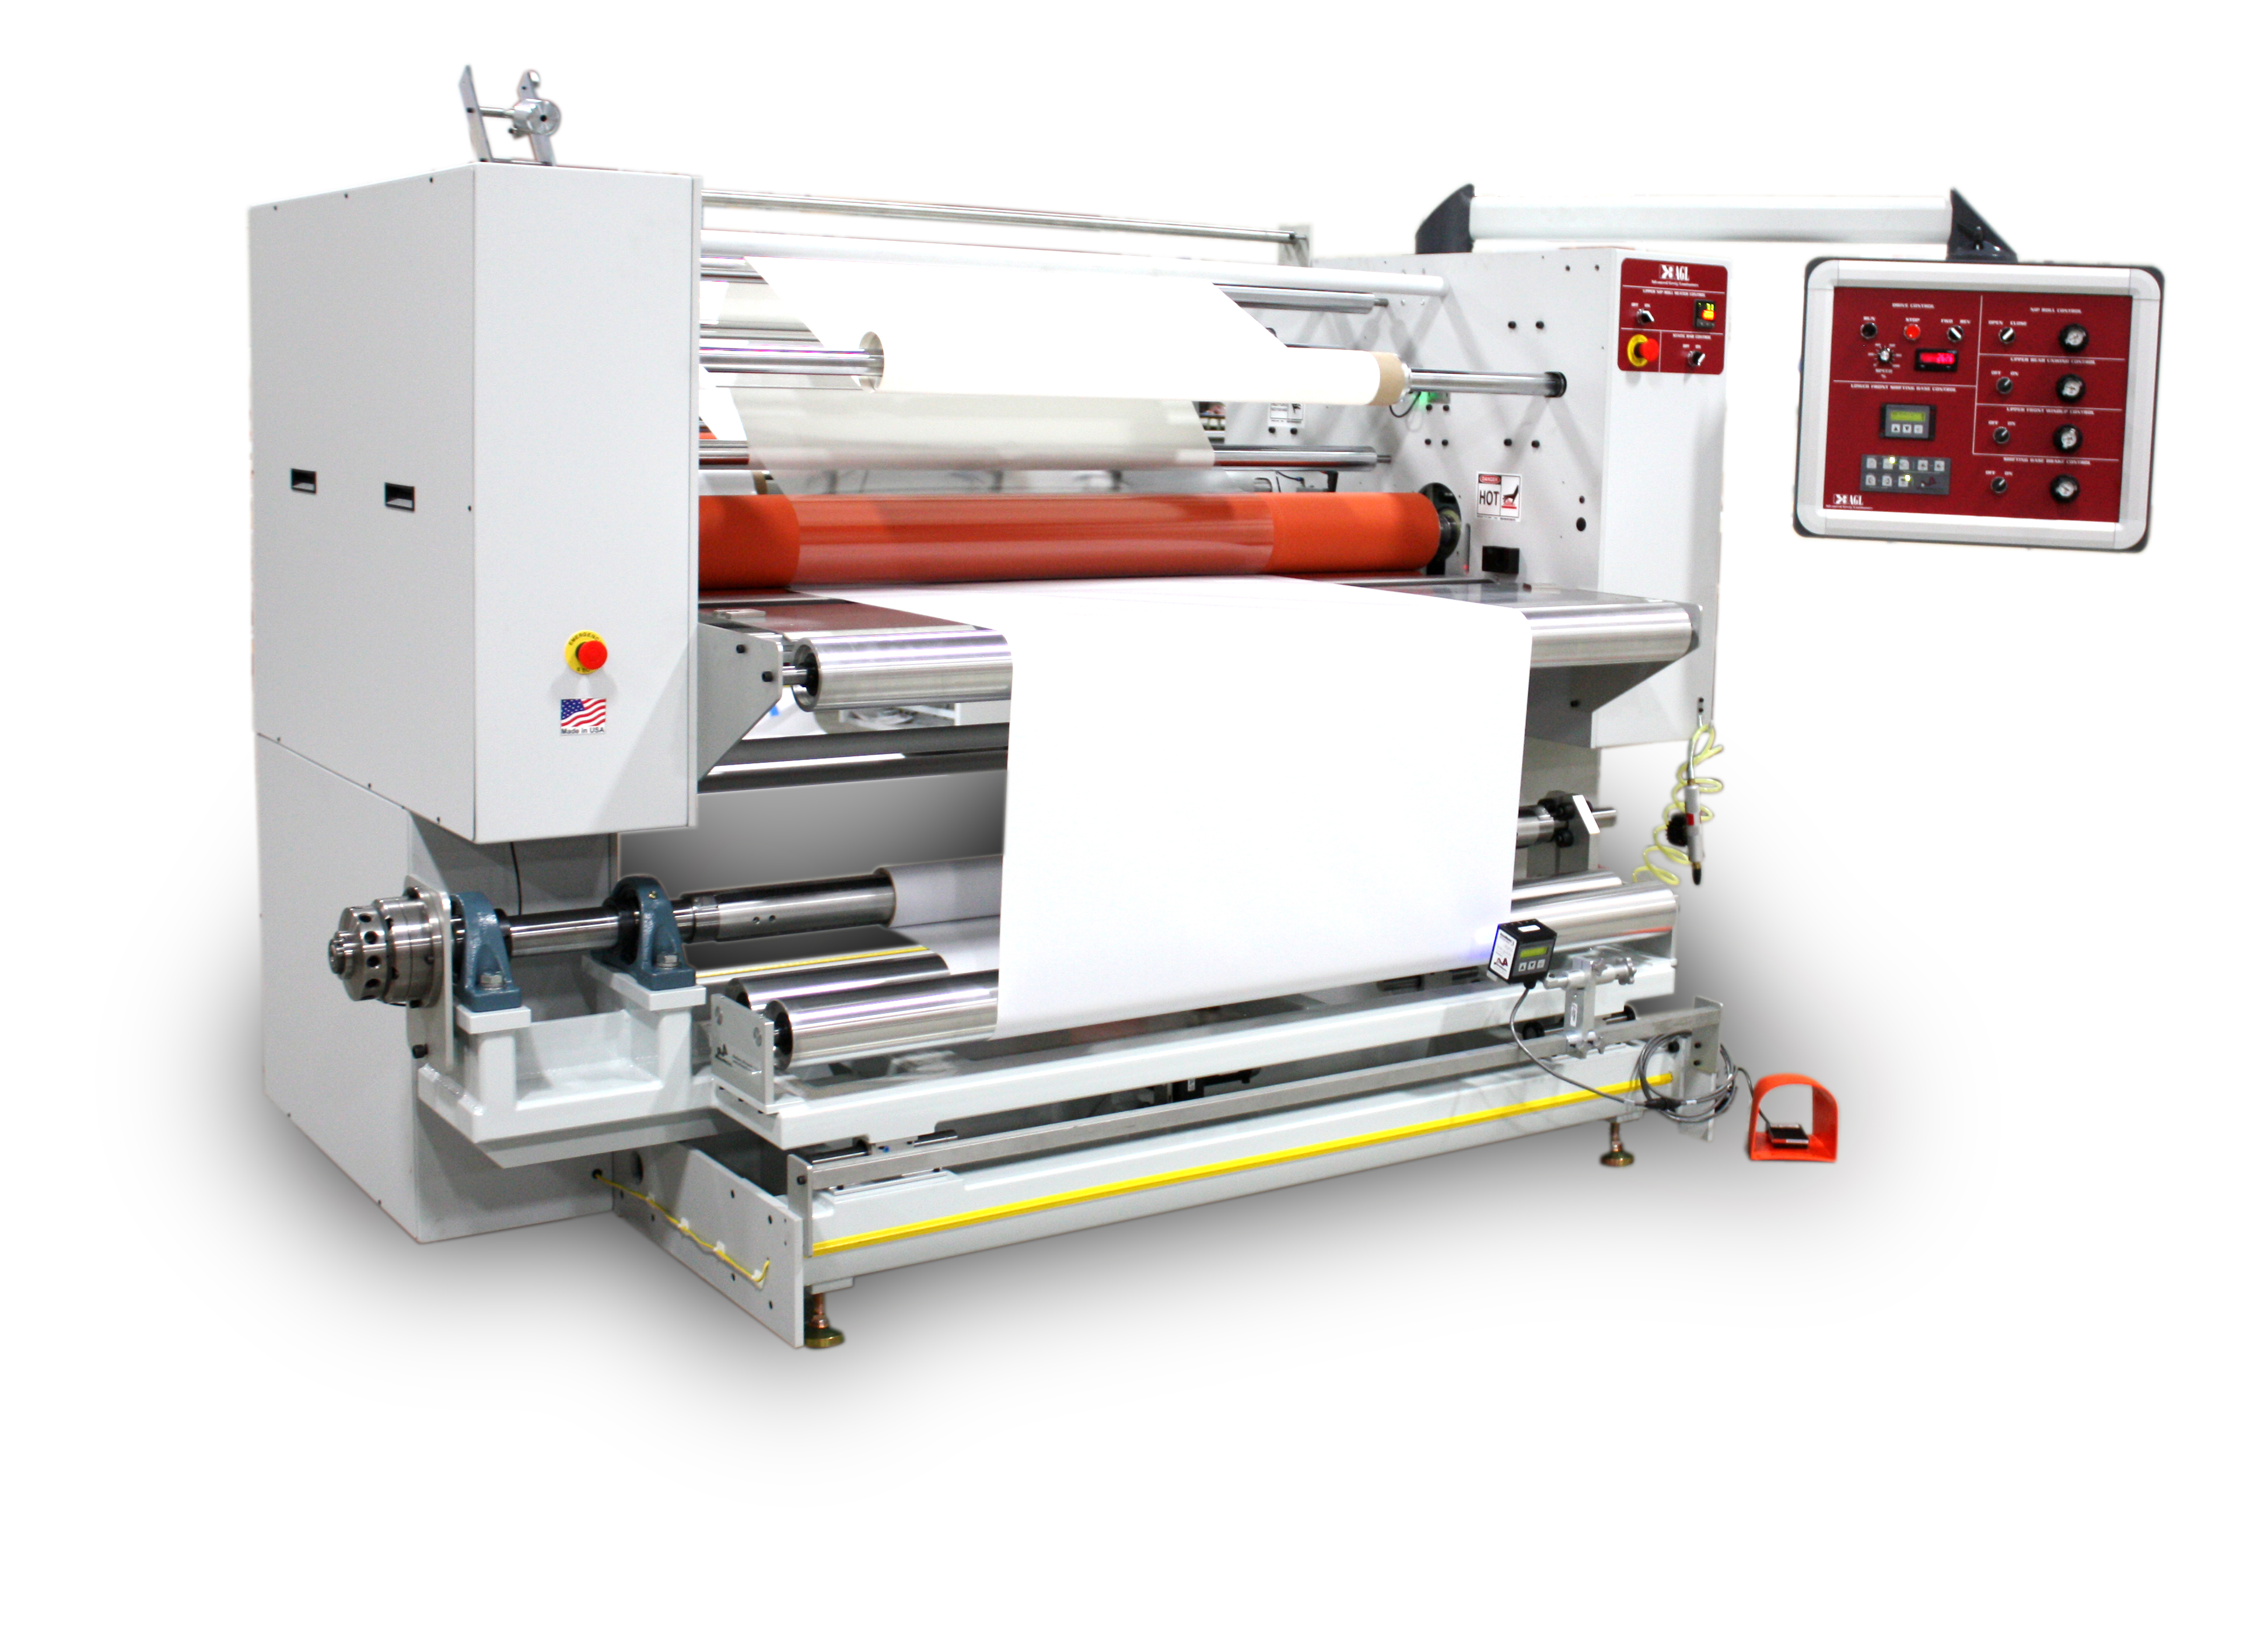 AGL 60 inch Identification Label Laminator